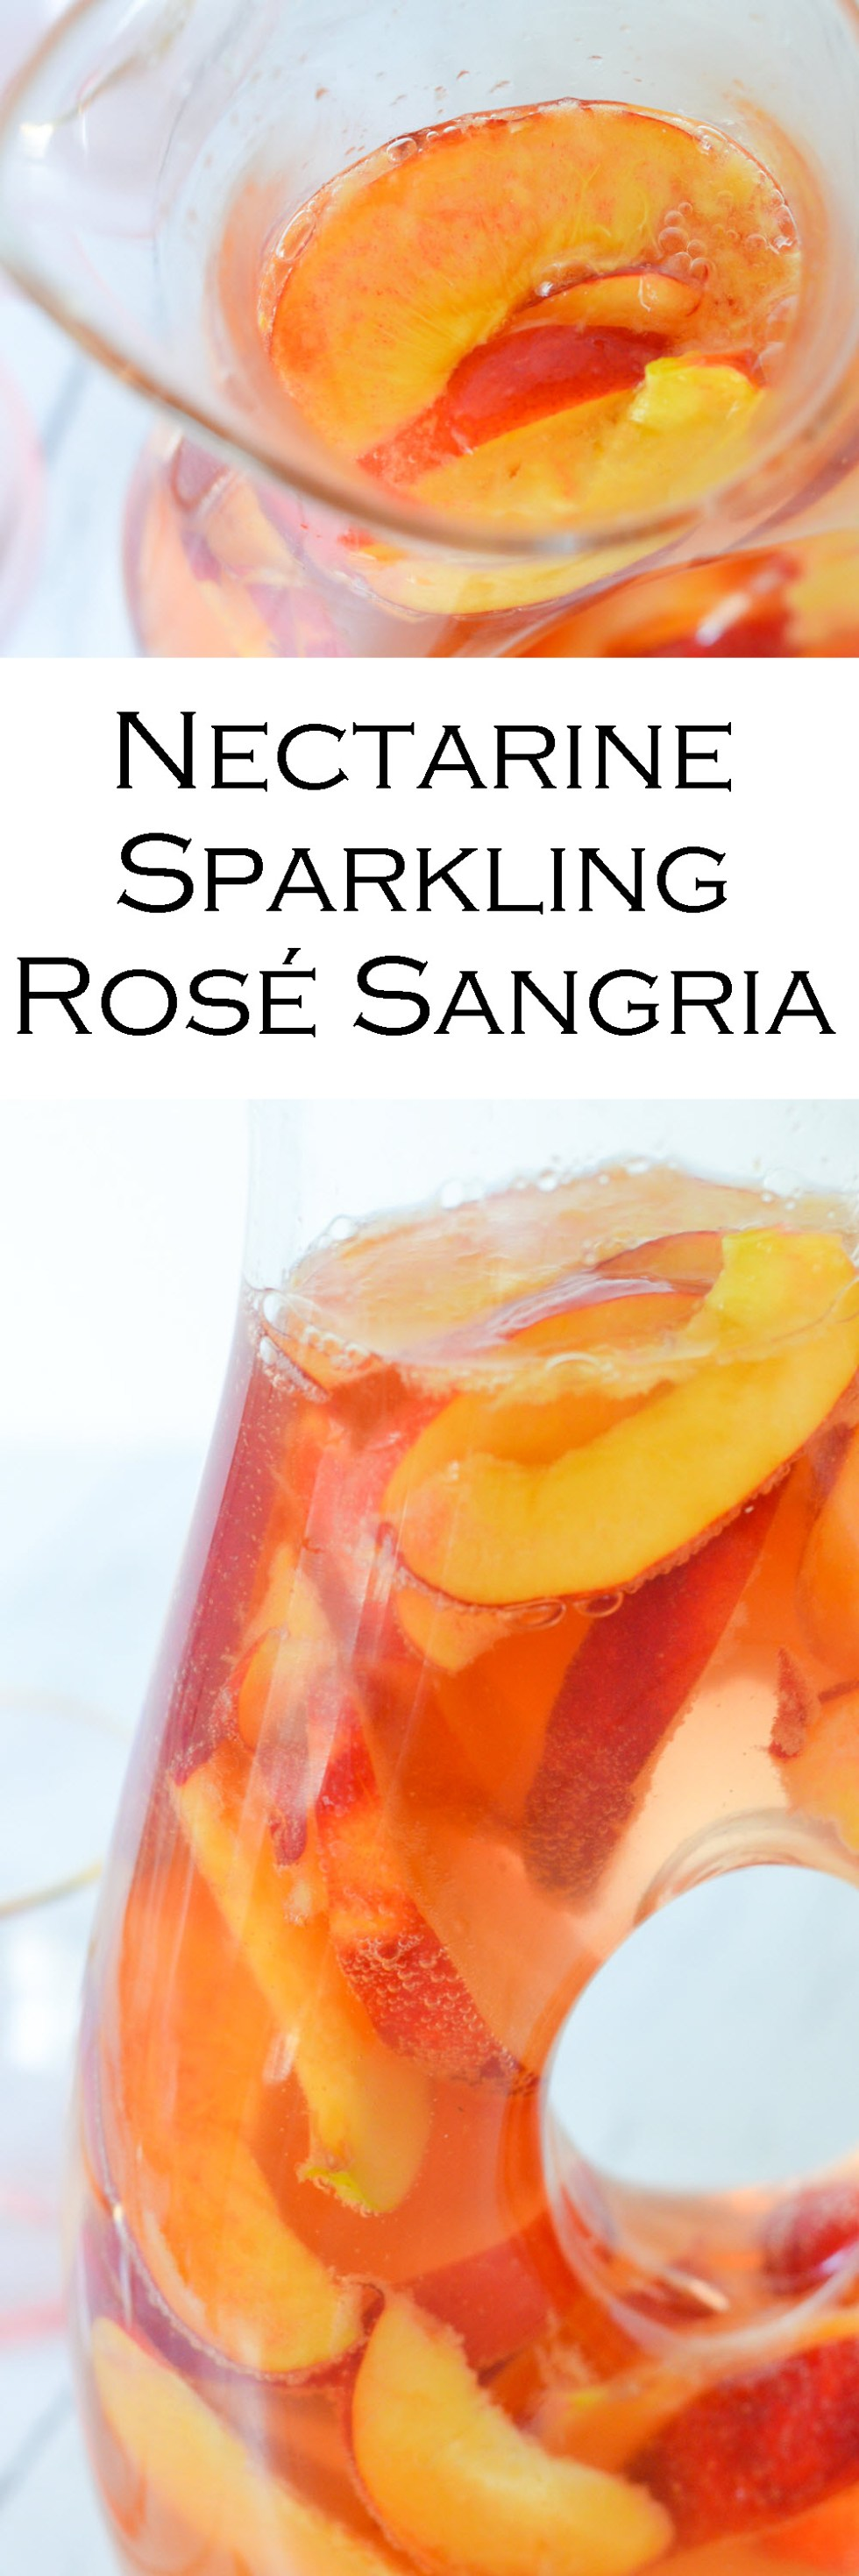 Nectarine Sparkling Rose Sangria w. Ginger + Orange Liqueur